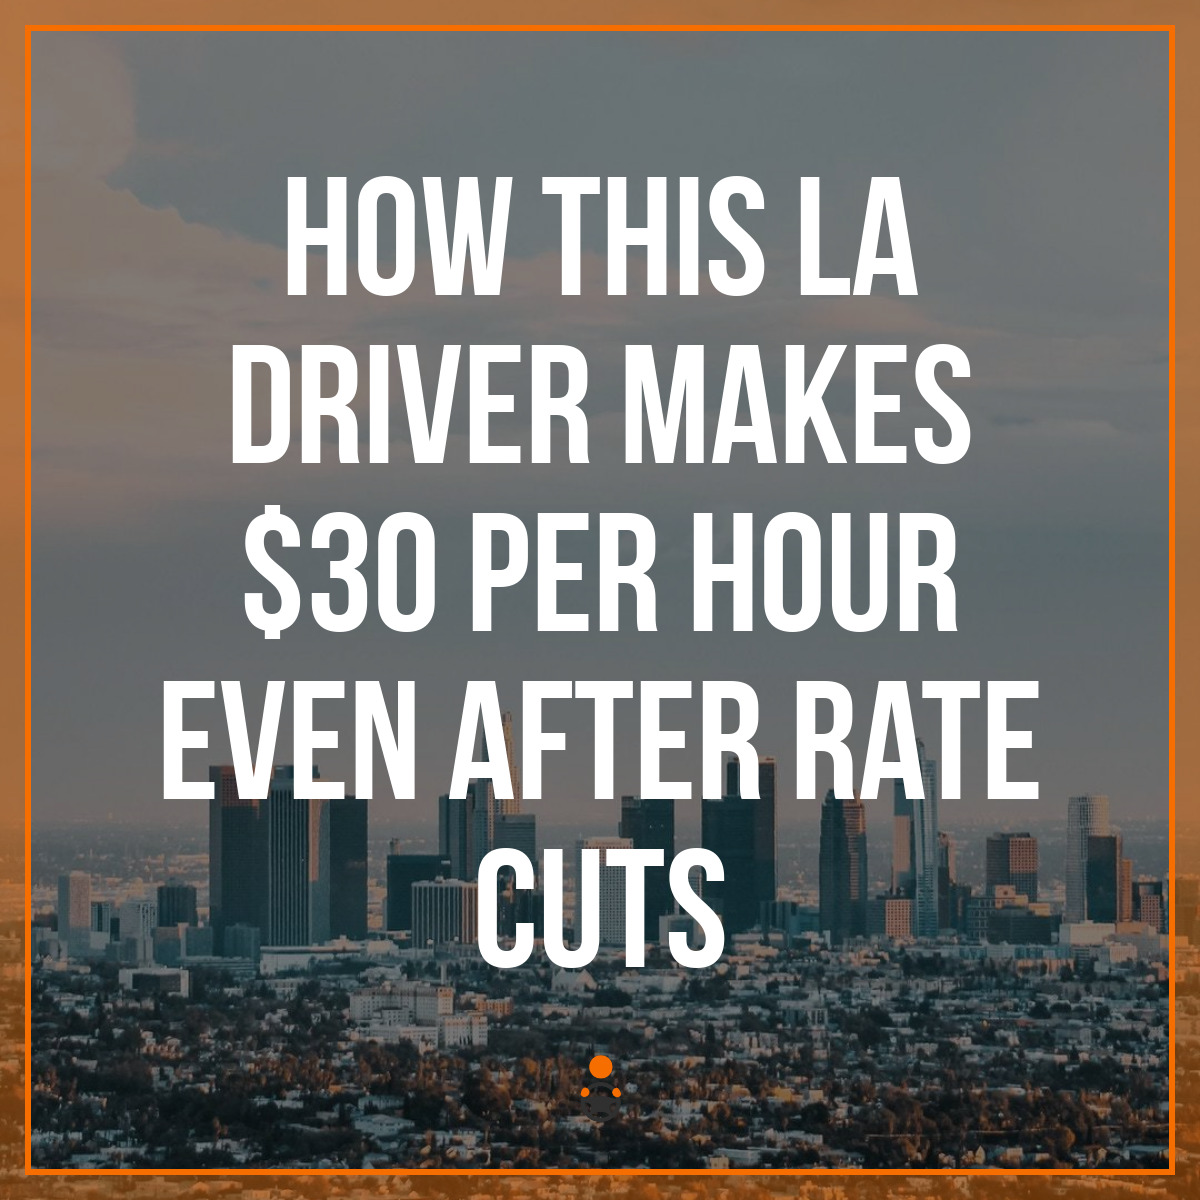 How This LA Driver Makes $30 Per Hour Even After Rate Cuts